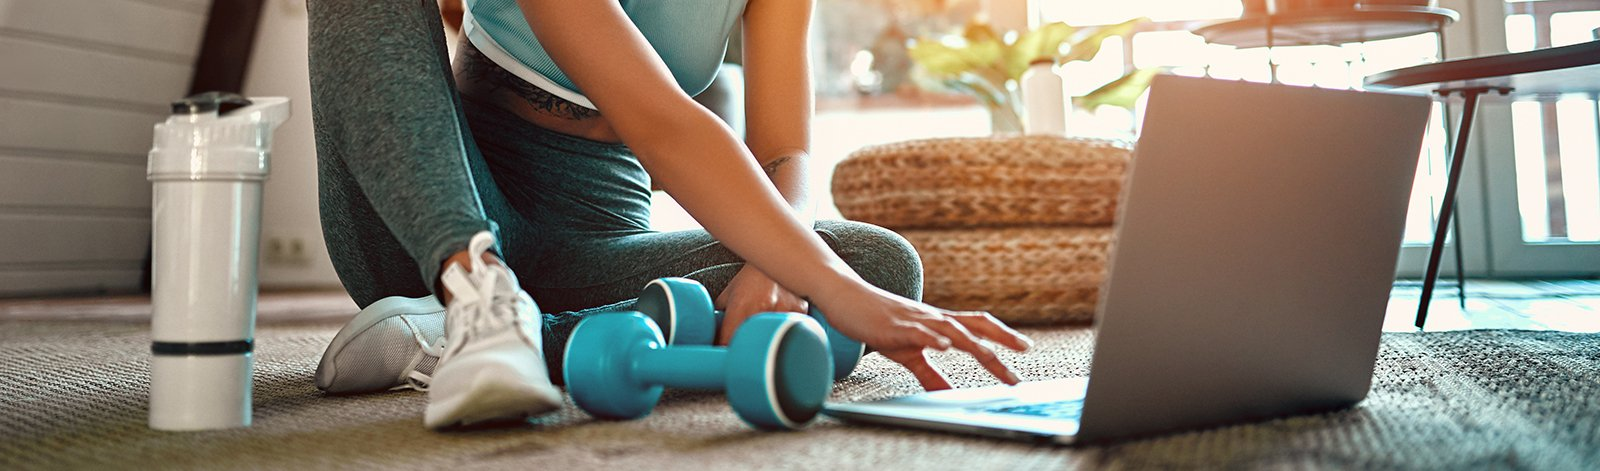 Woman getting ready to do an online workout